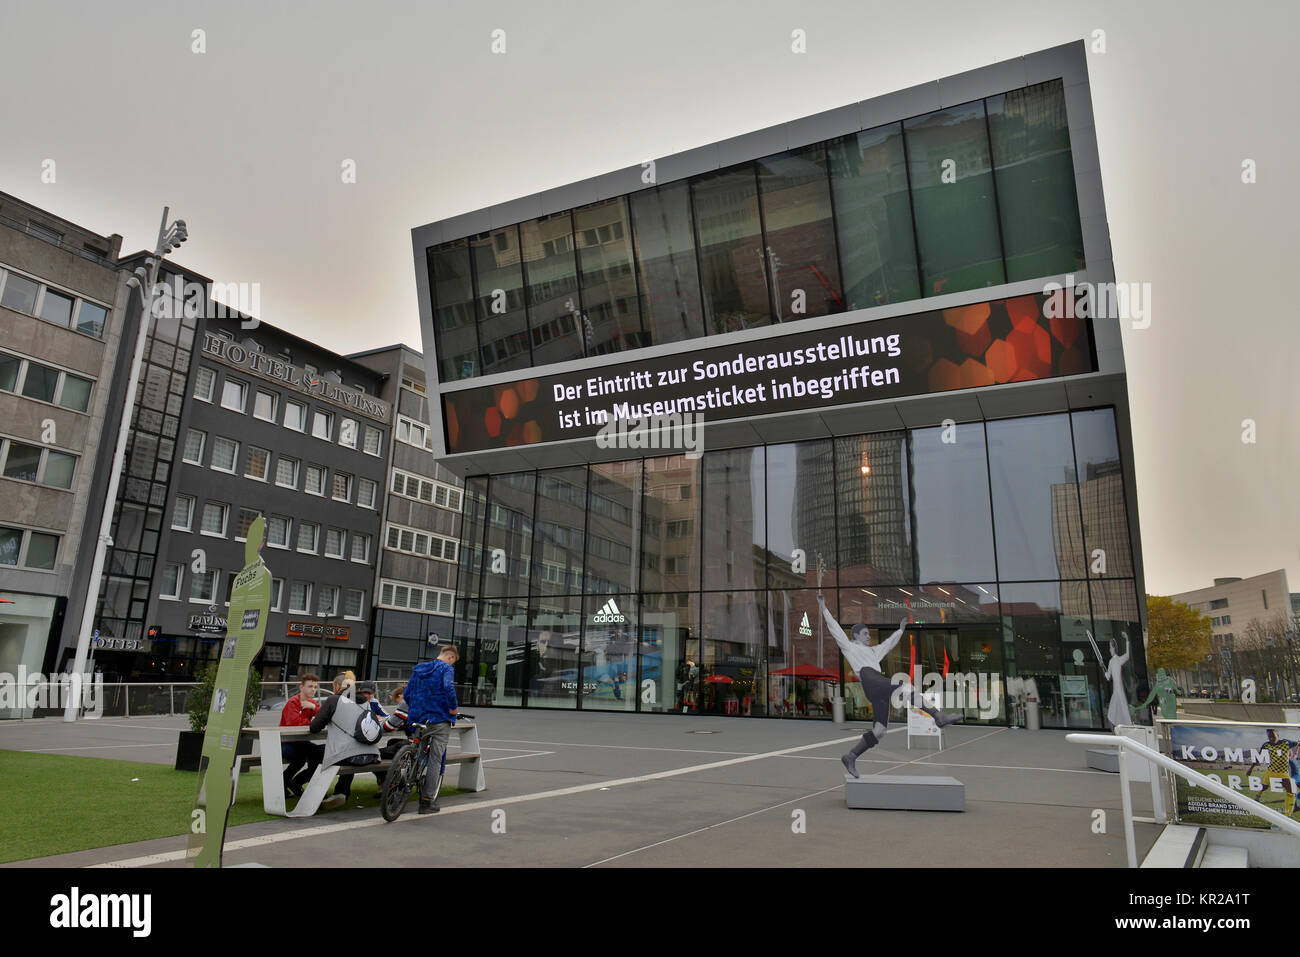 Fussballmuseum Stock Photos Fussballmuseum Stock Images Alamy